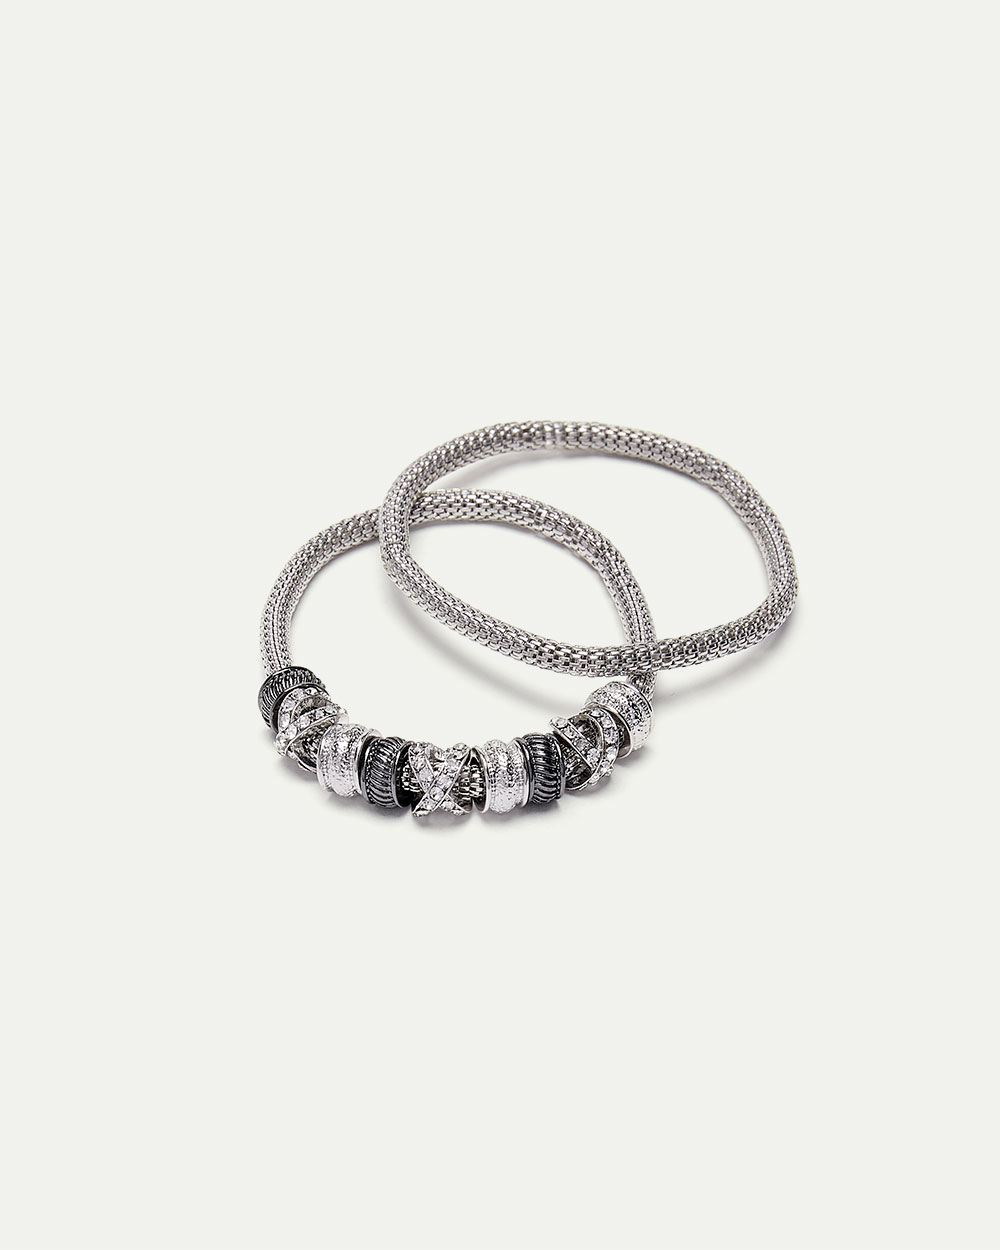 2-Piece Metal & Glass Stone Bracelet